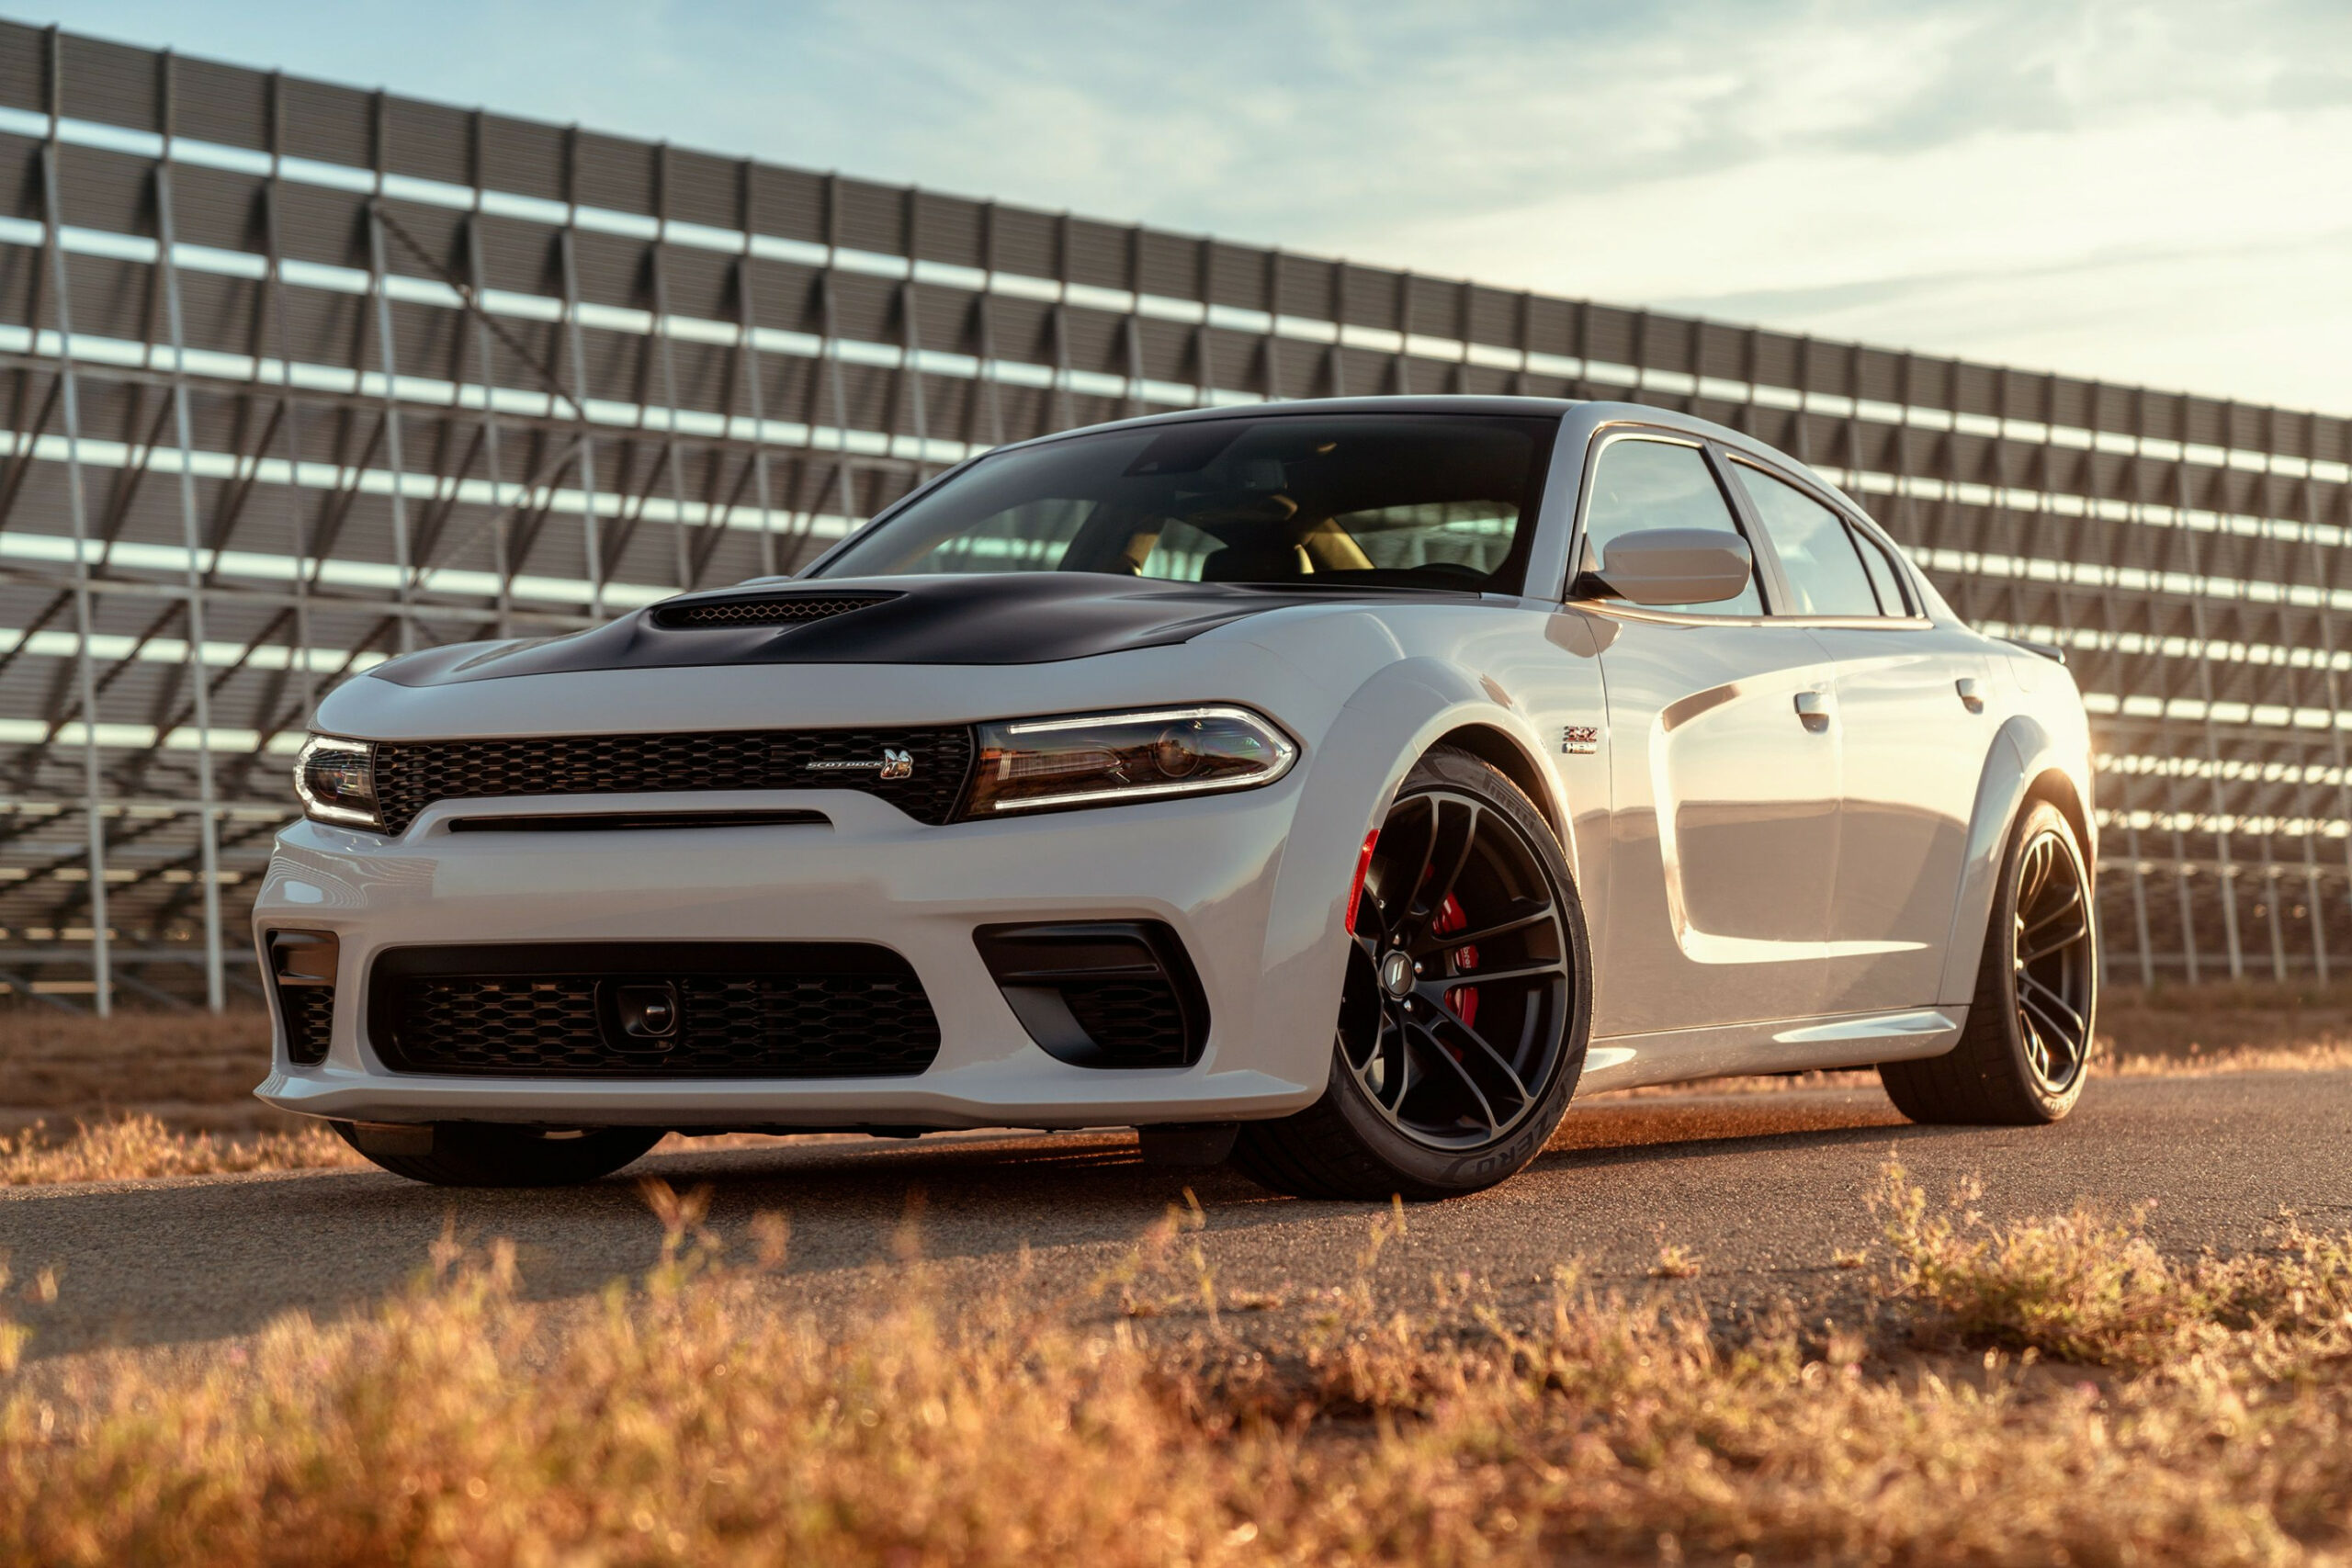 12 Dodge Charger Review, Pricing, and Specs - price of 2020 dodge challenger